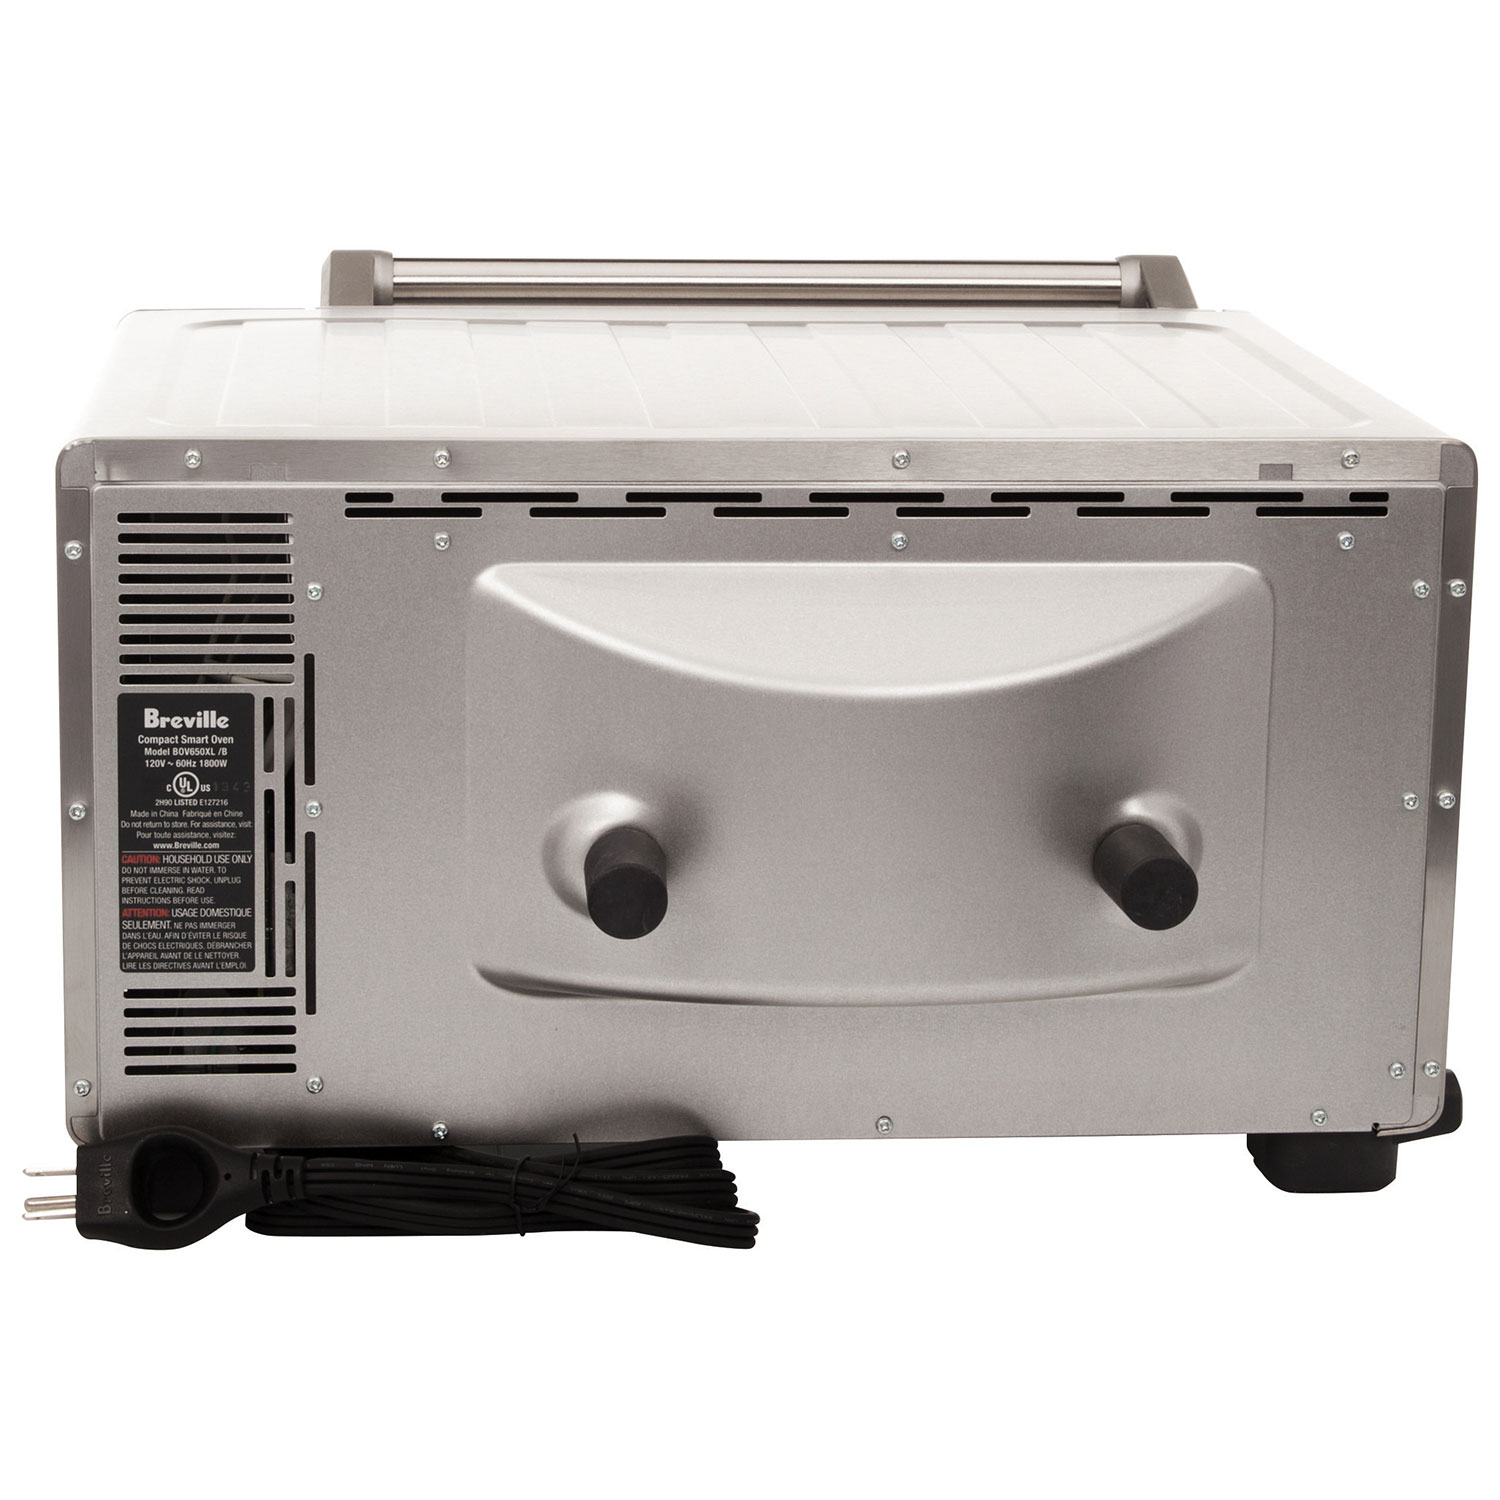 breville toaster oven 06 cu ft stainless steel toaster ovens best buy canada - Breville Oven